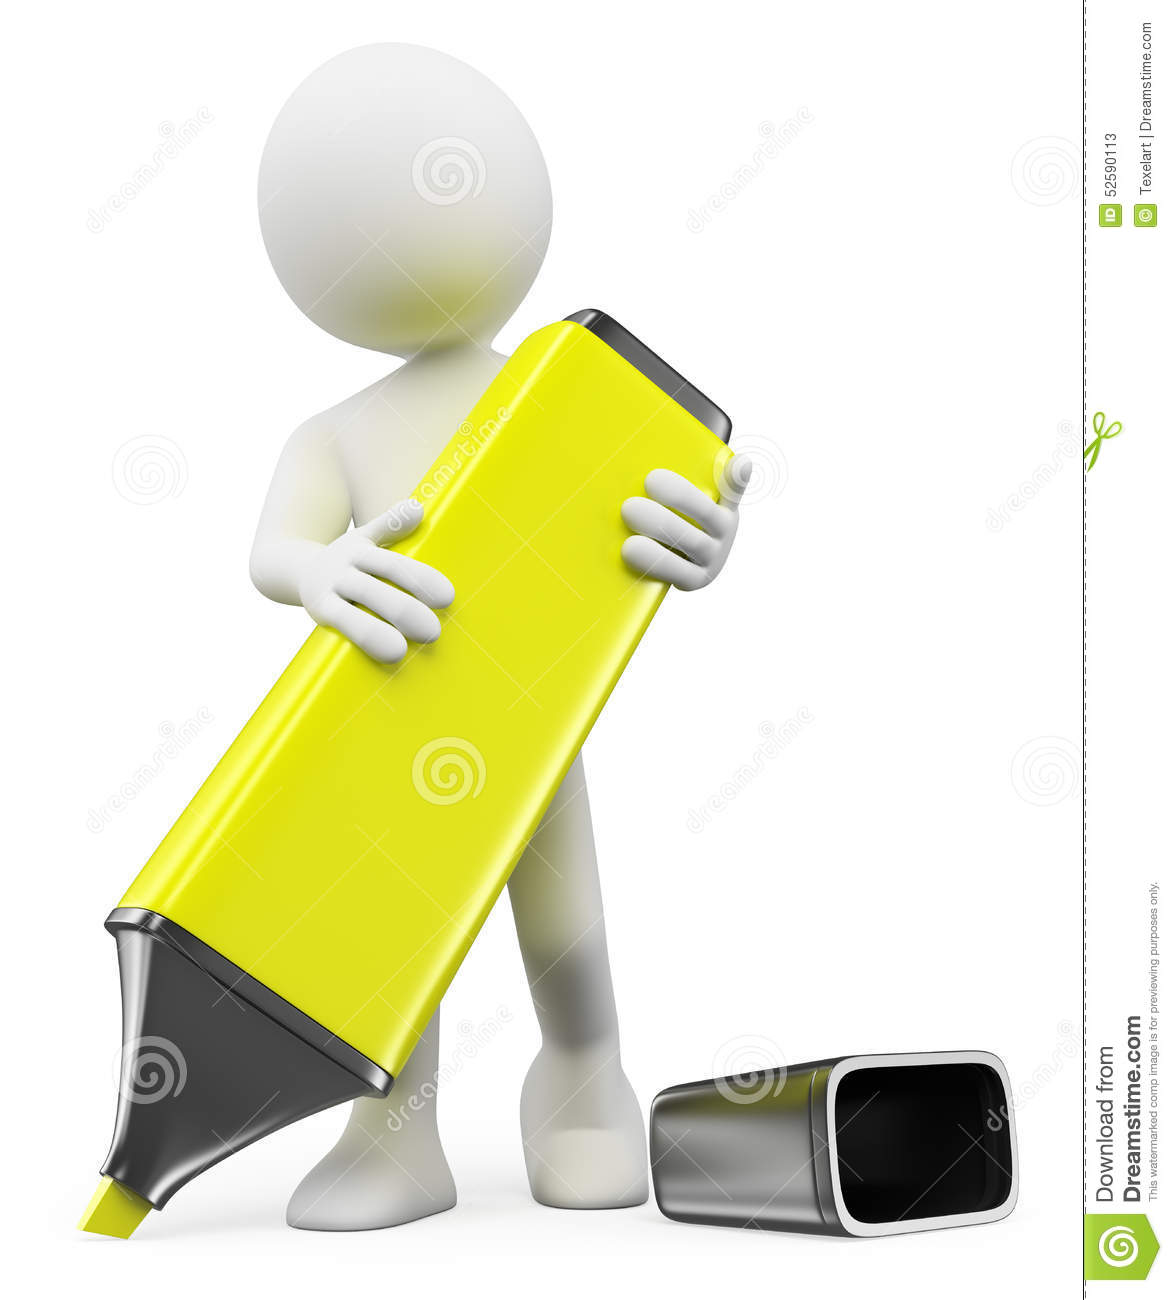 Download 3D White People. Man Writing With A Highlighter Stock Illustration - Illustration of draw, highlighter: 52590113